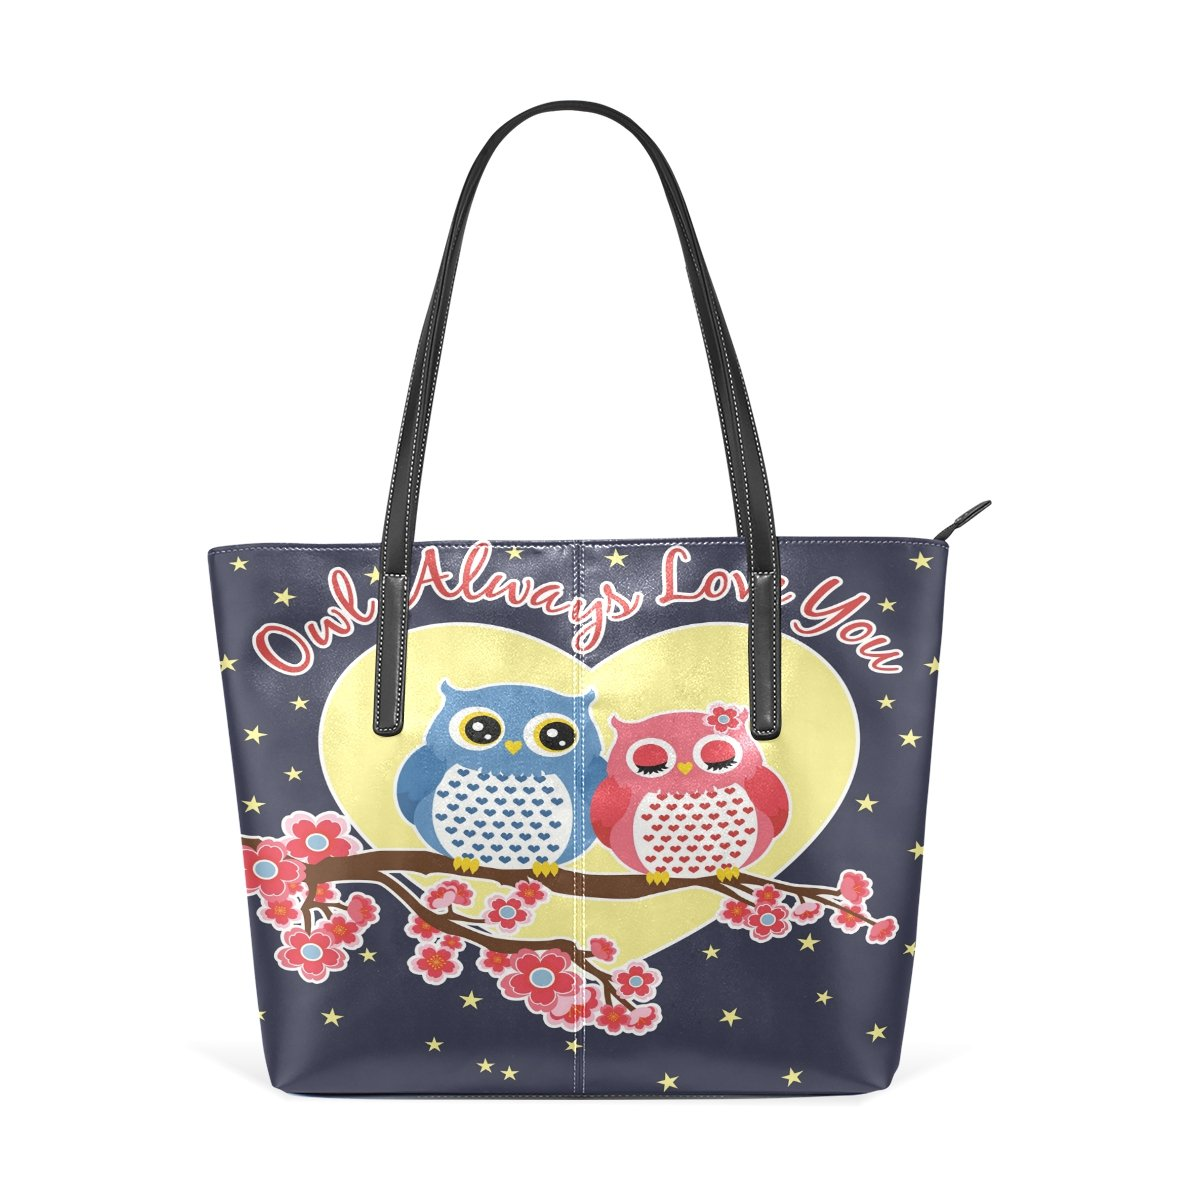 Women Leather Handbags Love Owls Top Handle Shoulder Bags